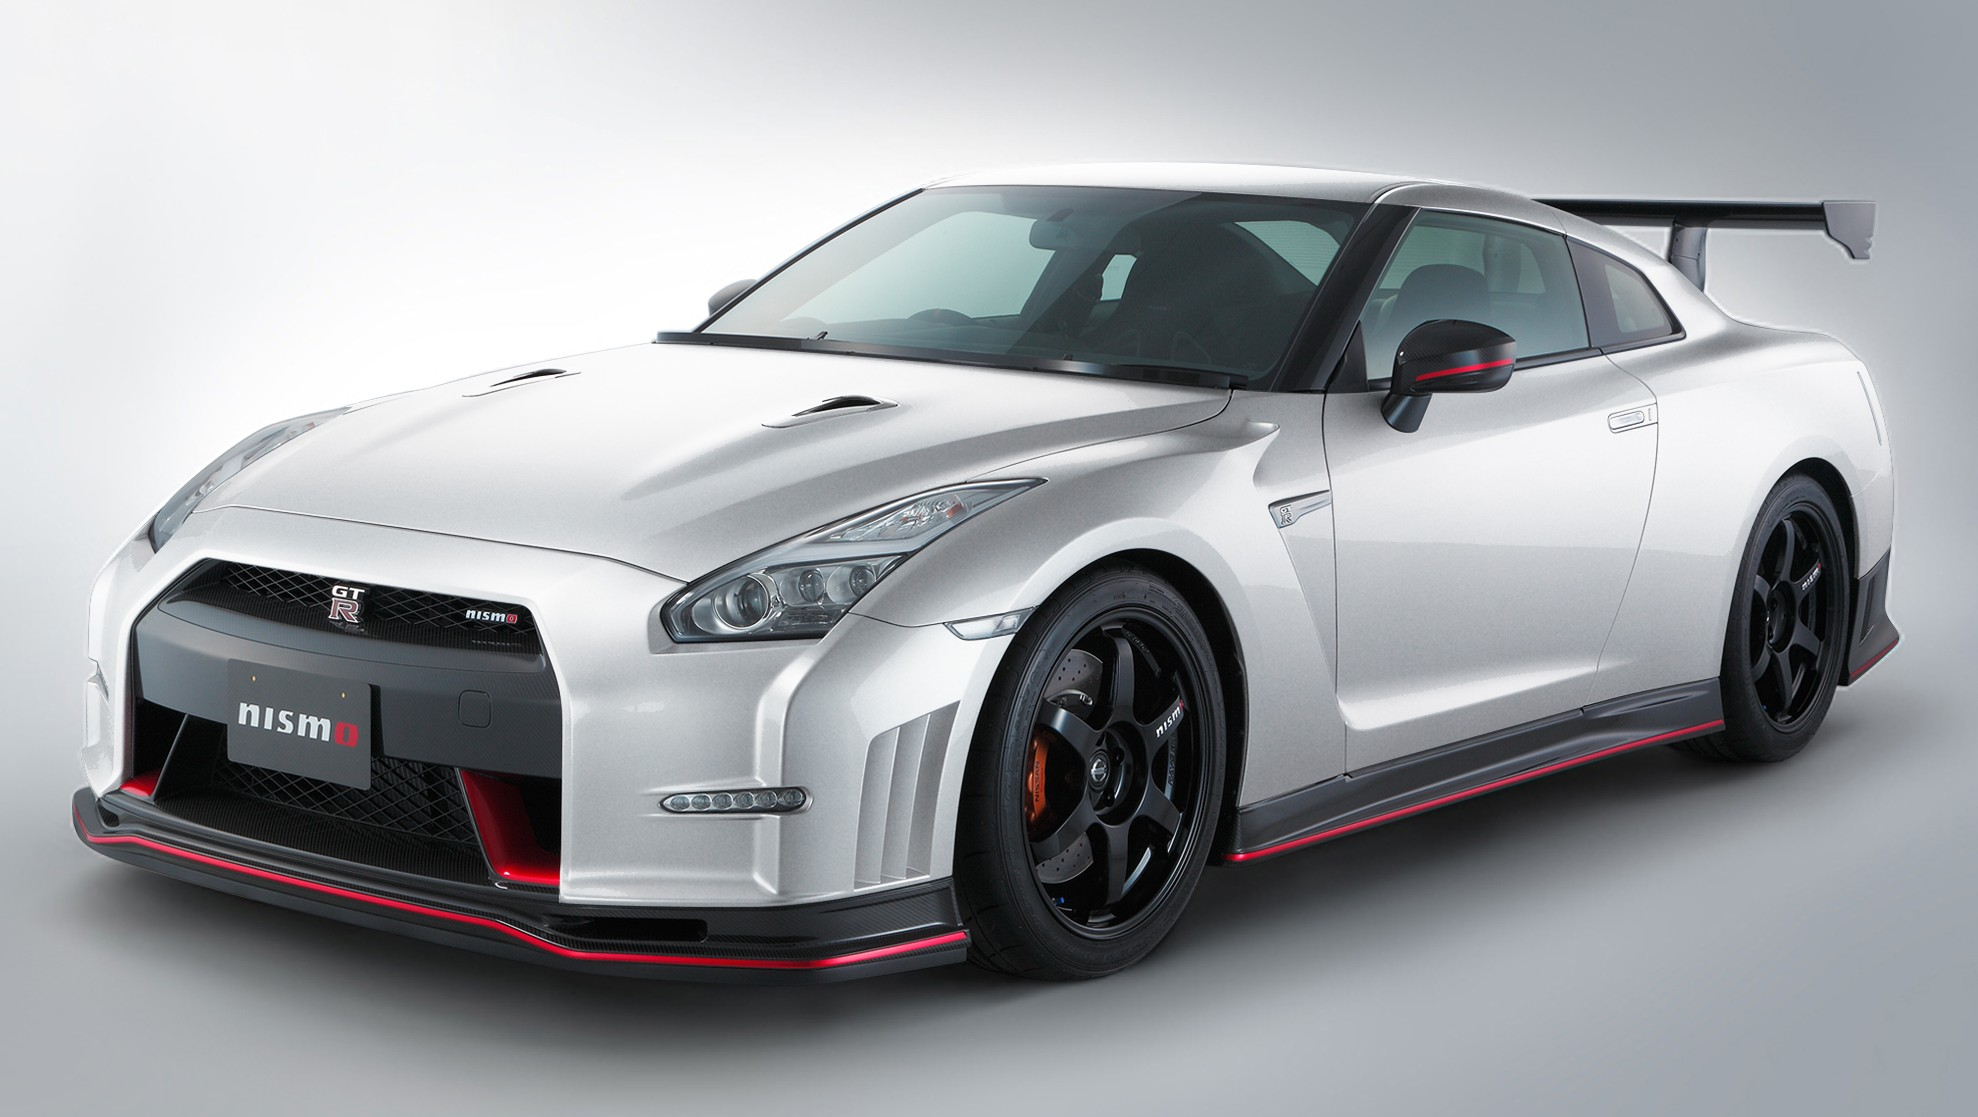 nissan gt r juke to feature at 2015 tokyo auto salon. Black Bedroom Furniture Sets. Home Design Ideas